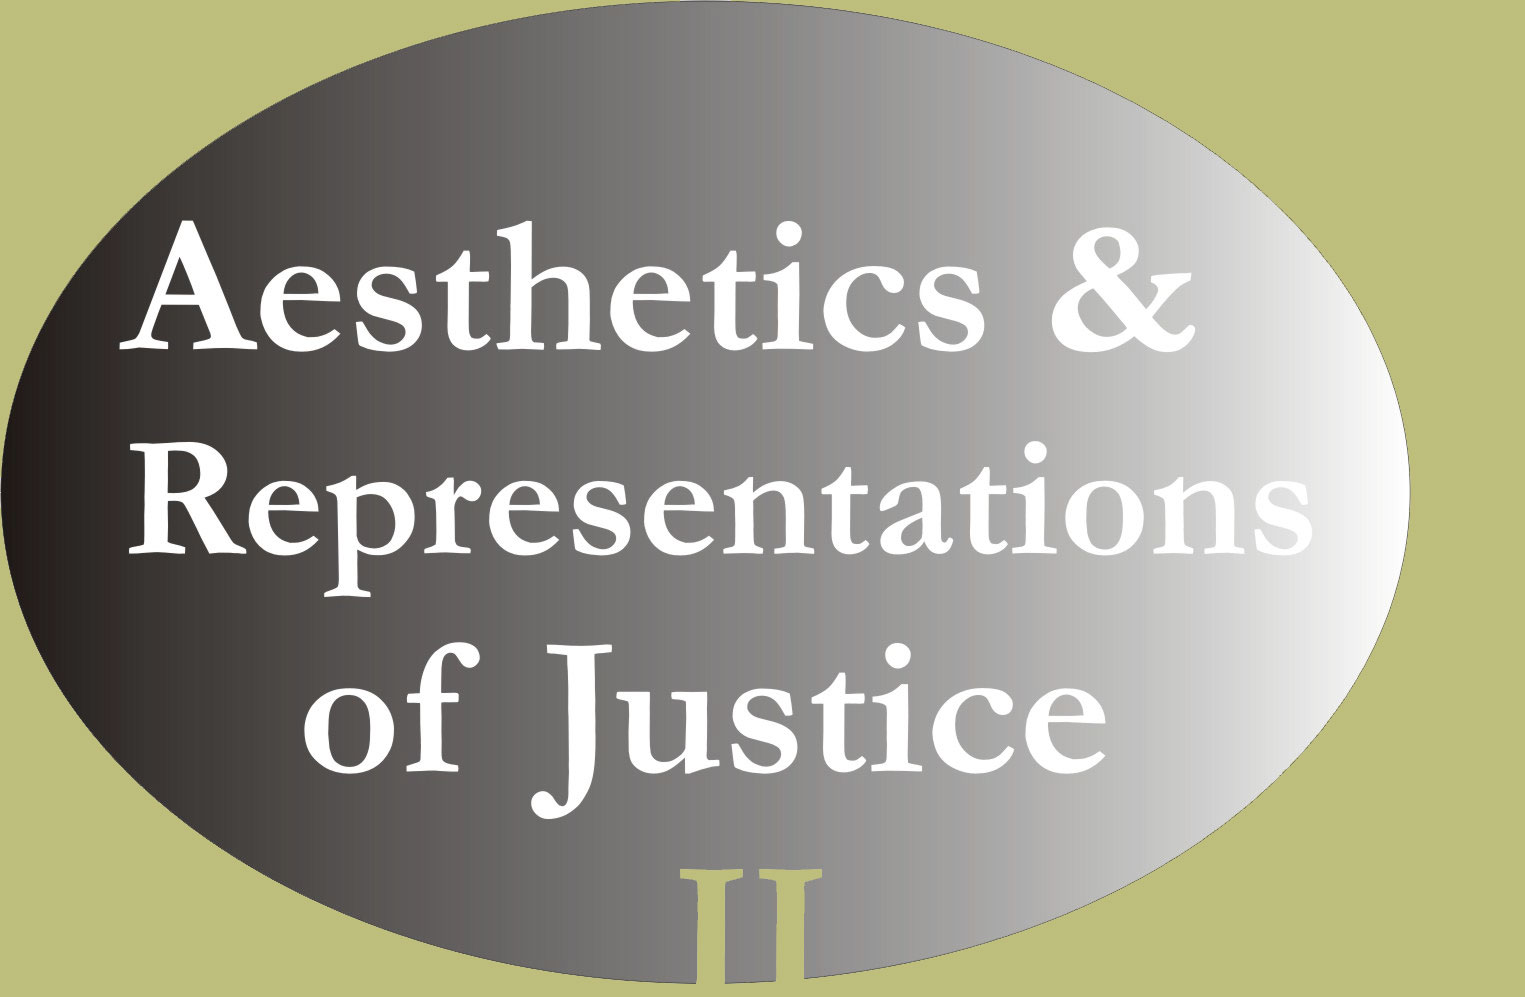 Aesthetics and Representation of Justice-II